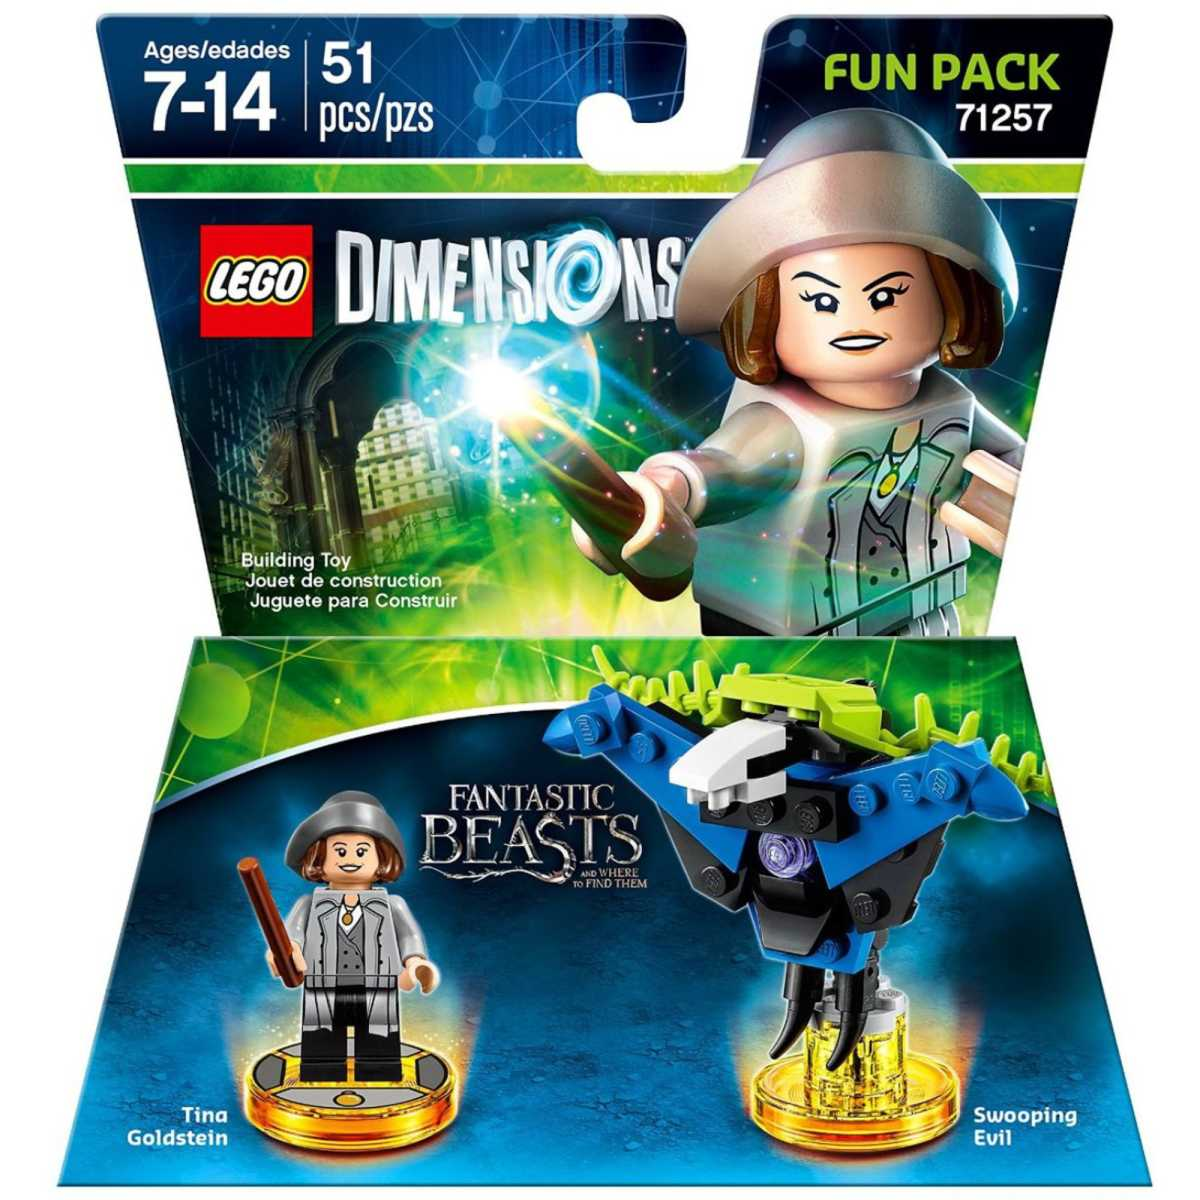 71257 Fantastic Beasts and Where to Find Them Porpentina Goldstein Fun Pack